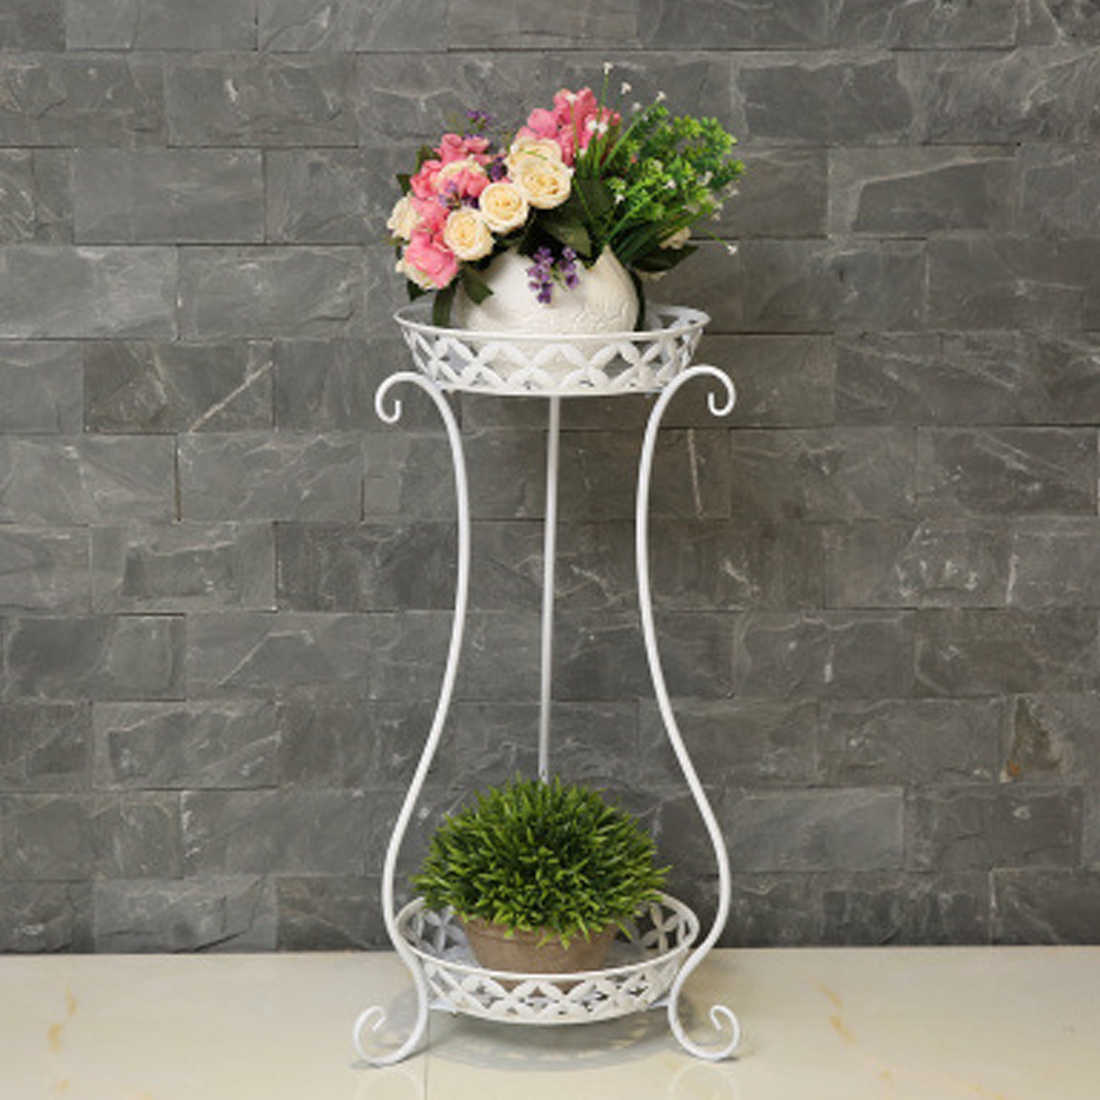 VICTMAX New European Iron Craft Double-Layer Gardening Potting Shelf Flowerpot Holder For Home Garden Decor - Vase Type 2 Colors